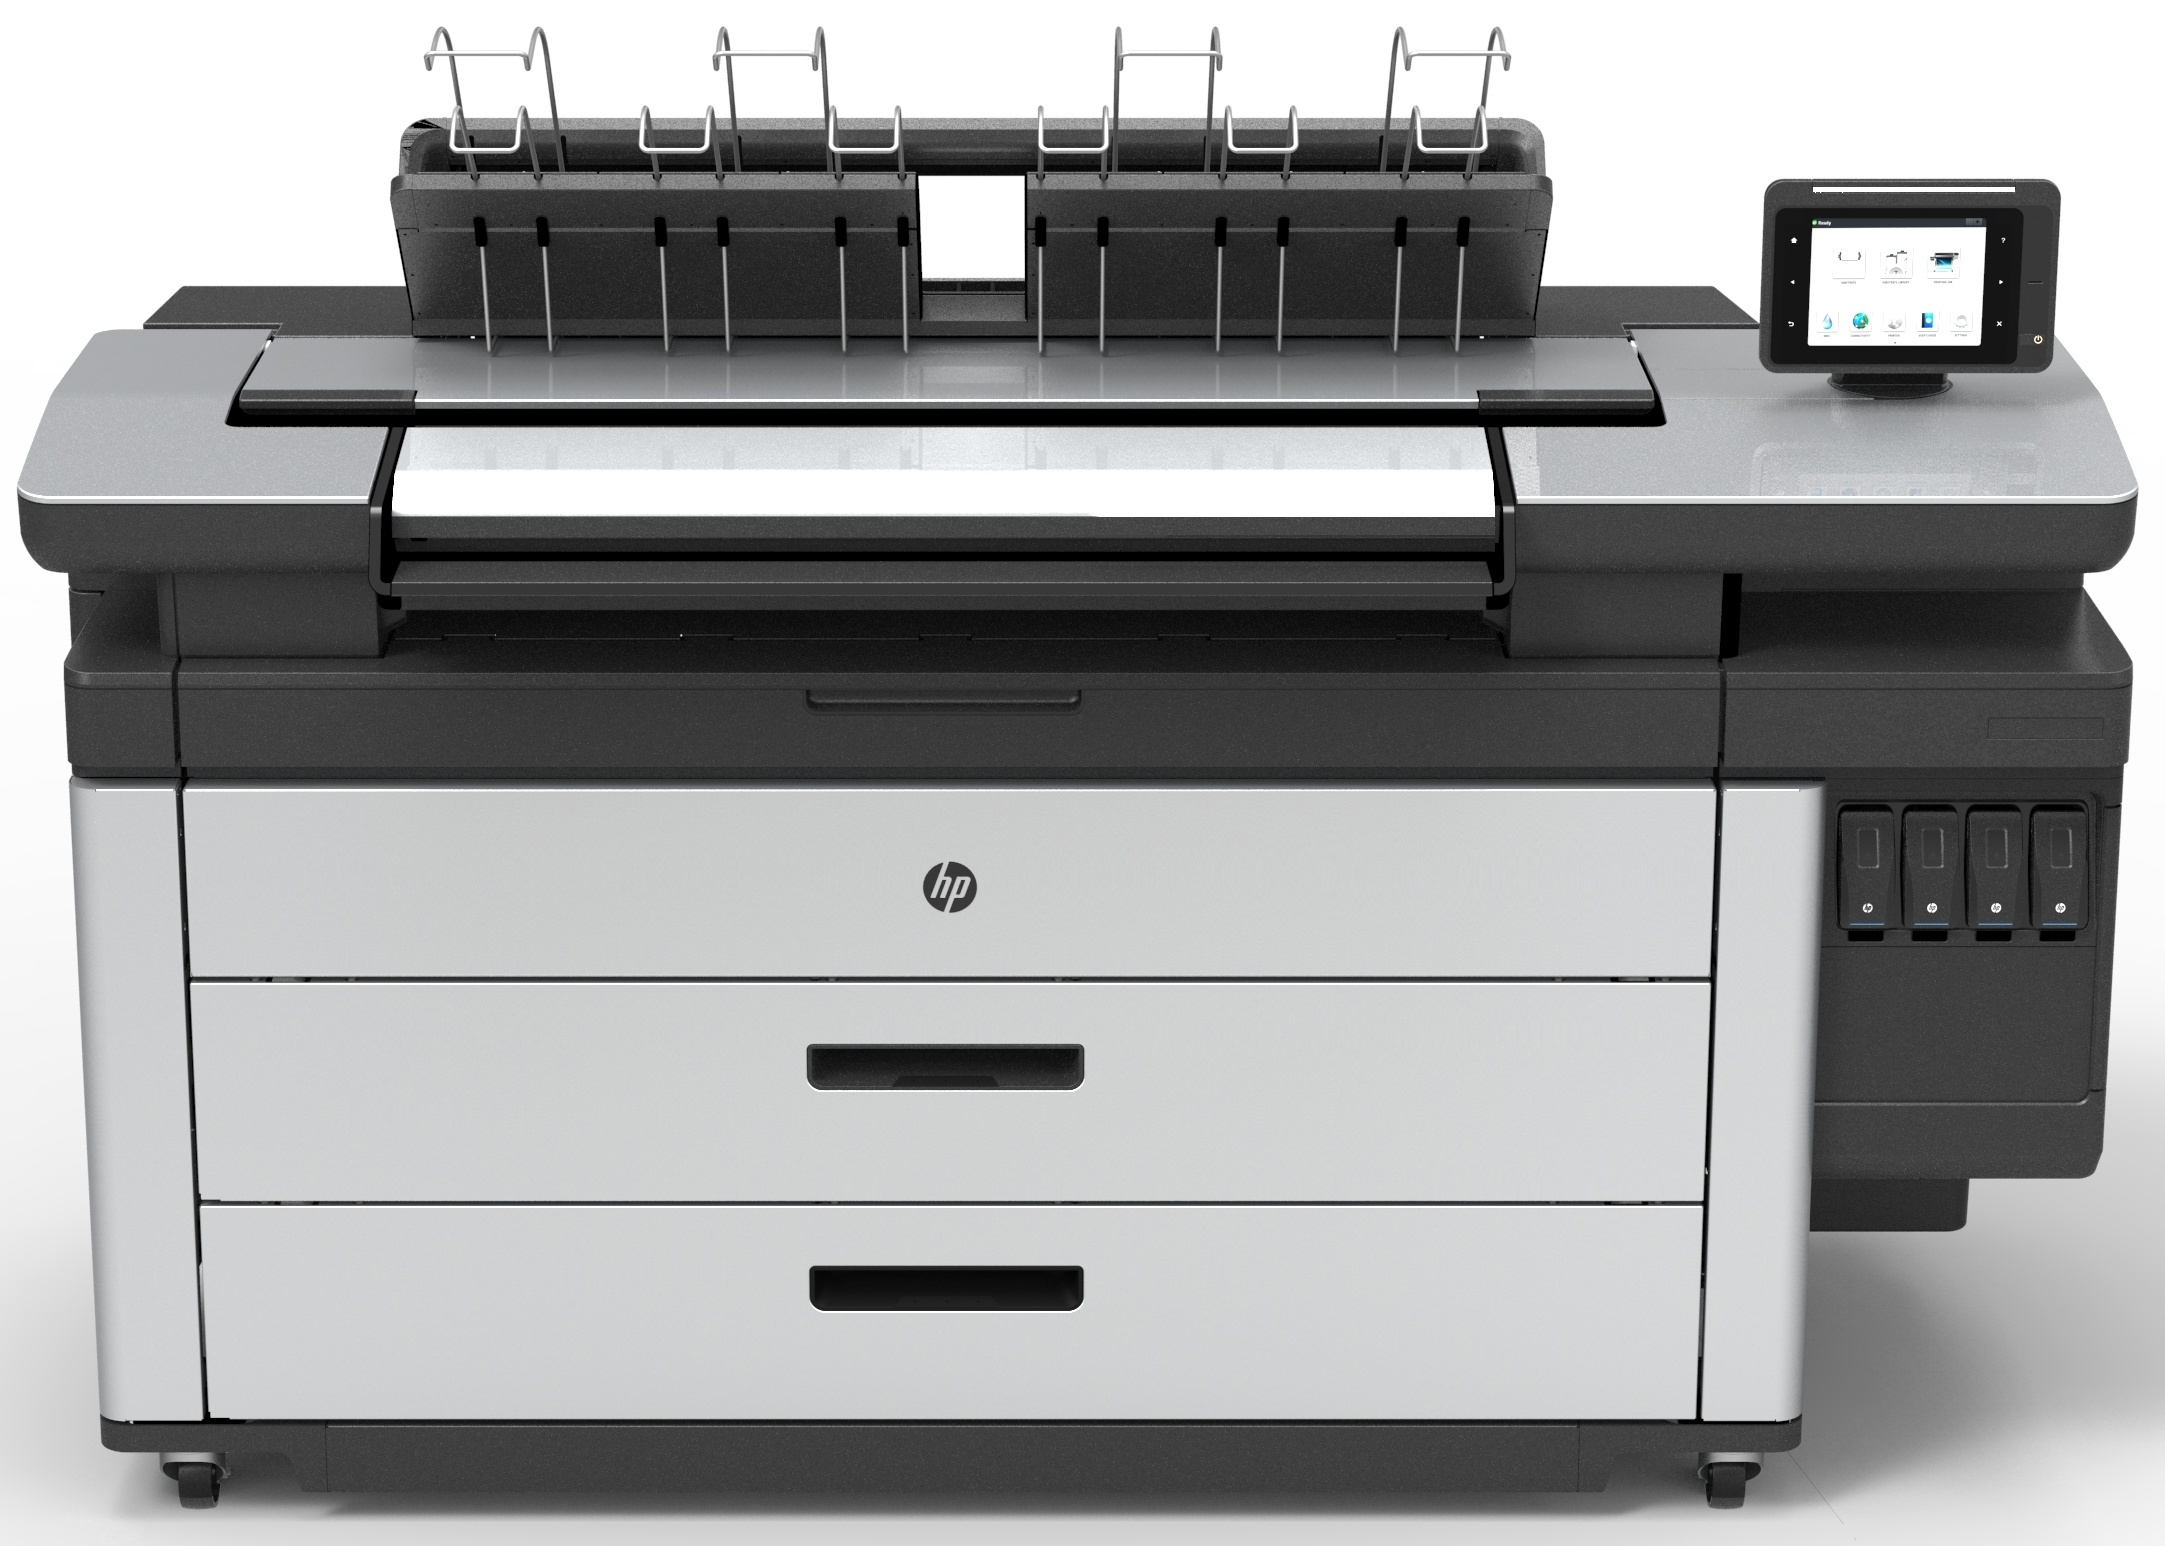 Printer-Using-HP-Large-Format-PageWide-Technology